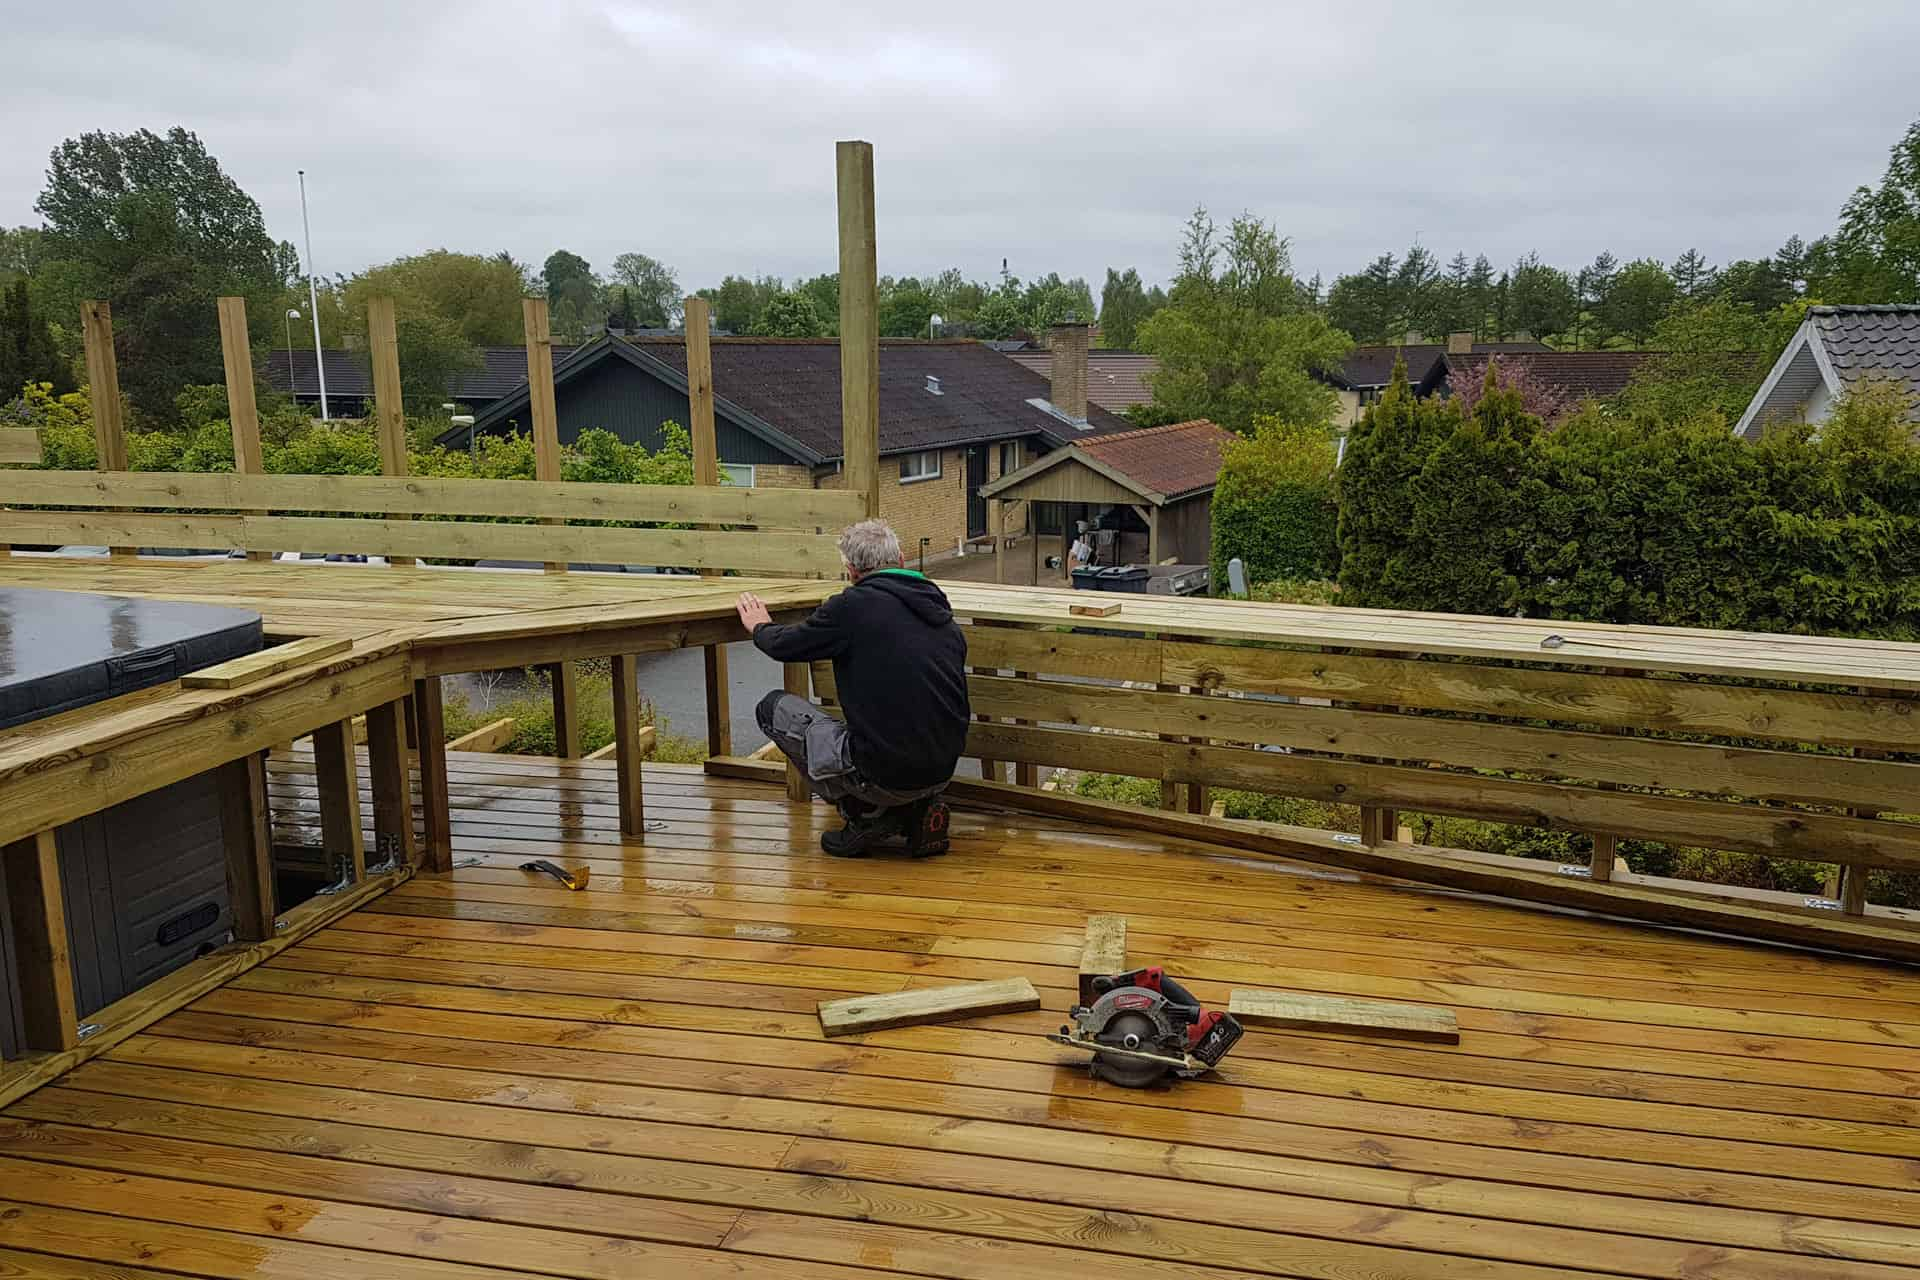 How to build a deck - wooden deck